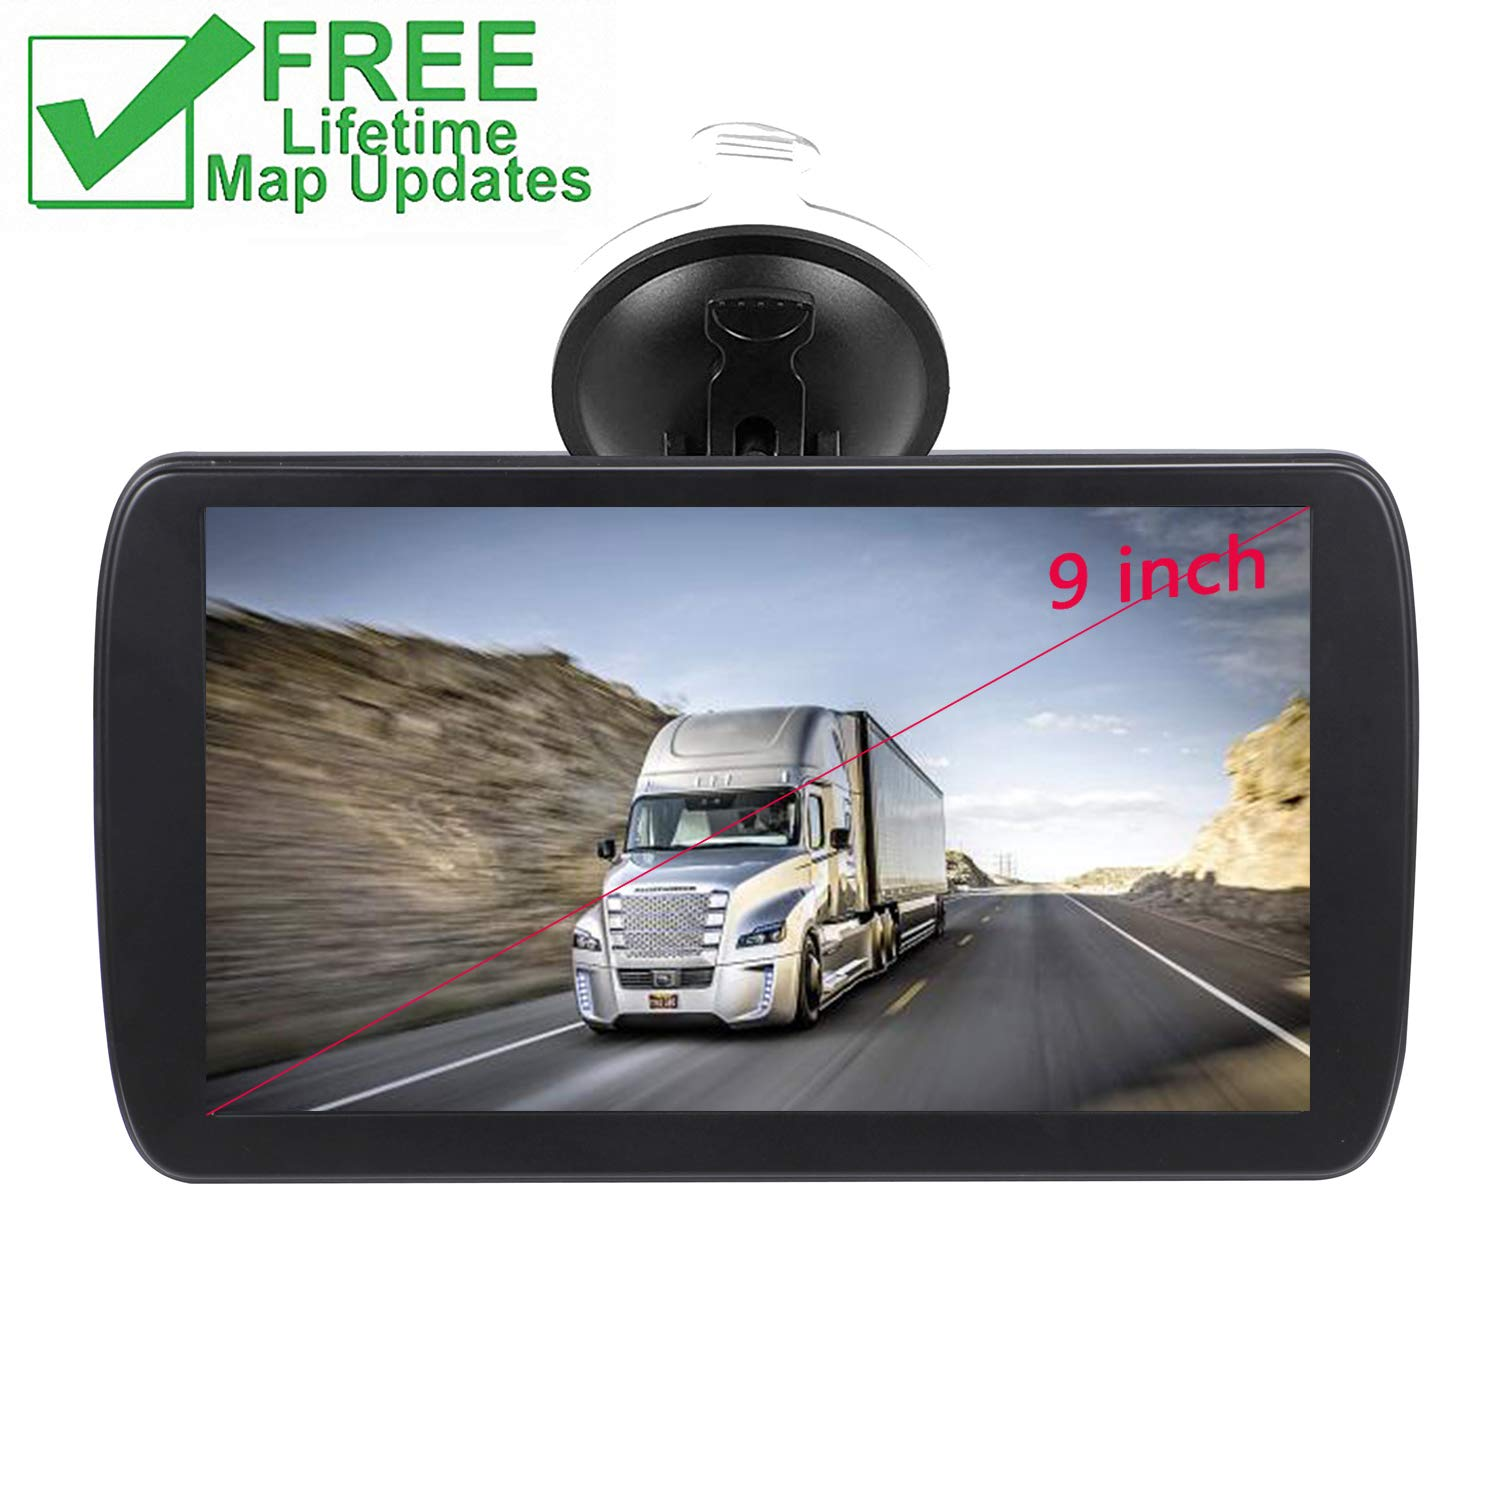 Car GPS, 9 inches Navigation System for Cars Lifetime Map Updates Touch Screen Real Voice Direction Vehicle GPS (black-01) by FULiYEAR